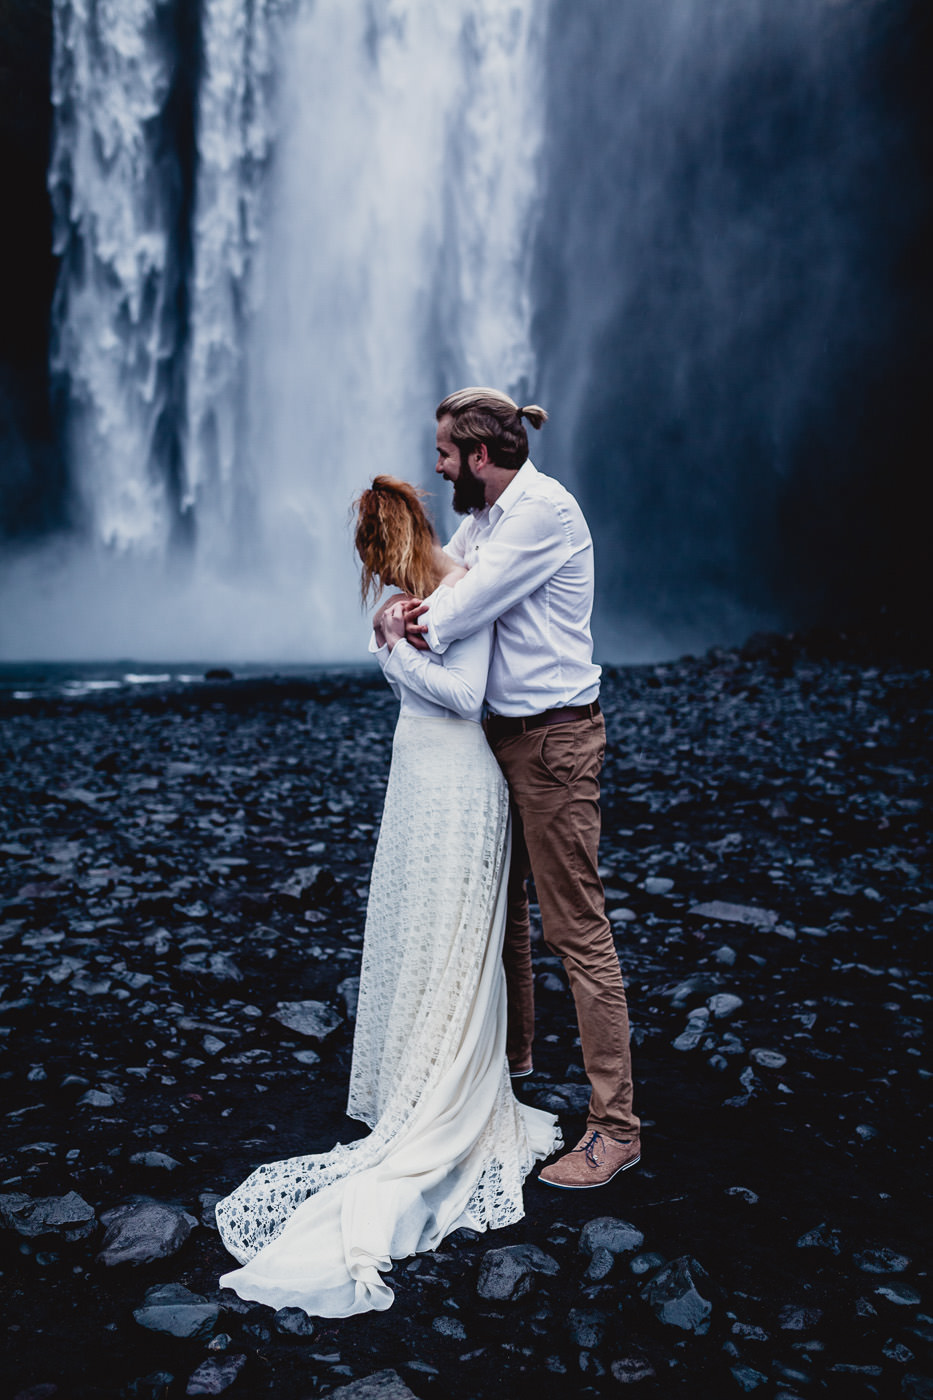 iceland-elopement-photographer-iceland-wedding-photography-skogafoss-daniela-vallant-waterfall